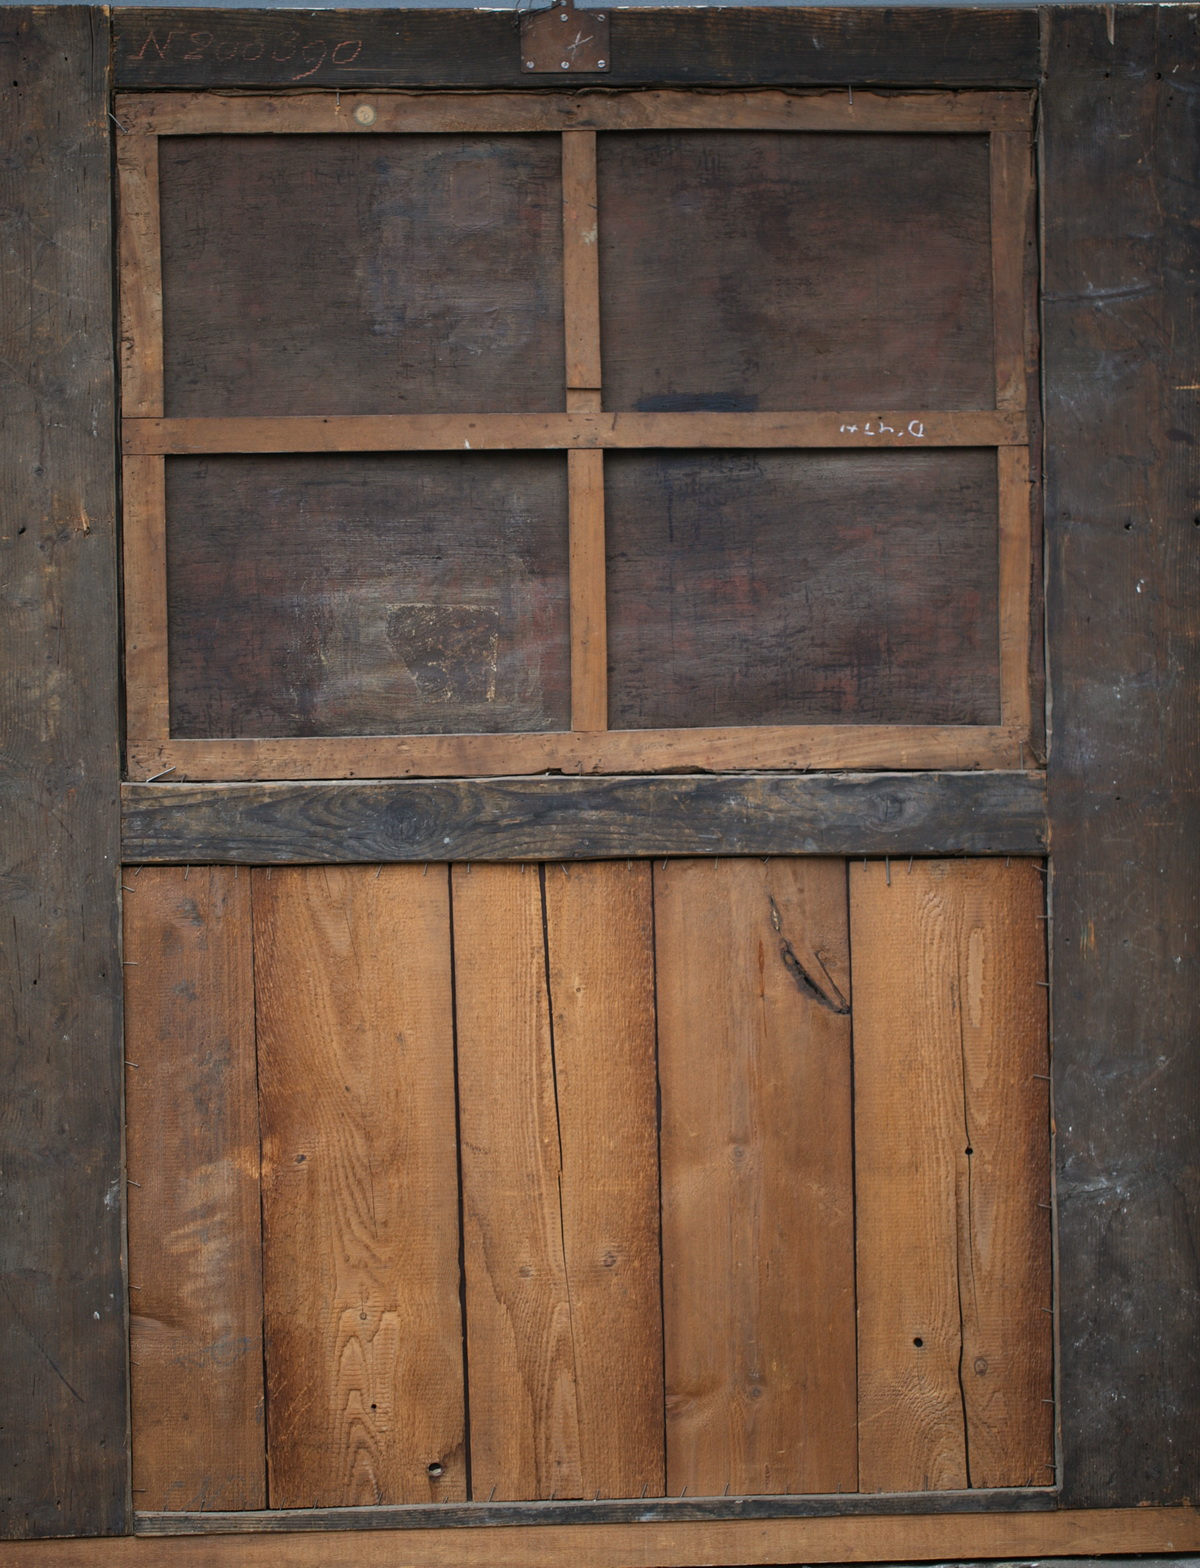 Pier glass of woodwork 18th